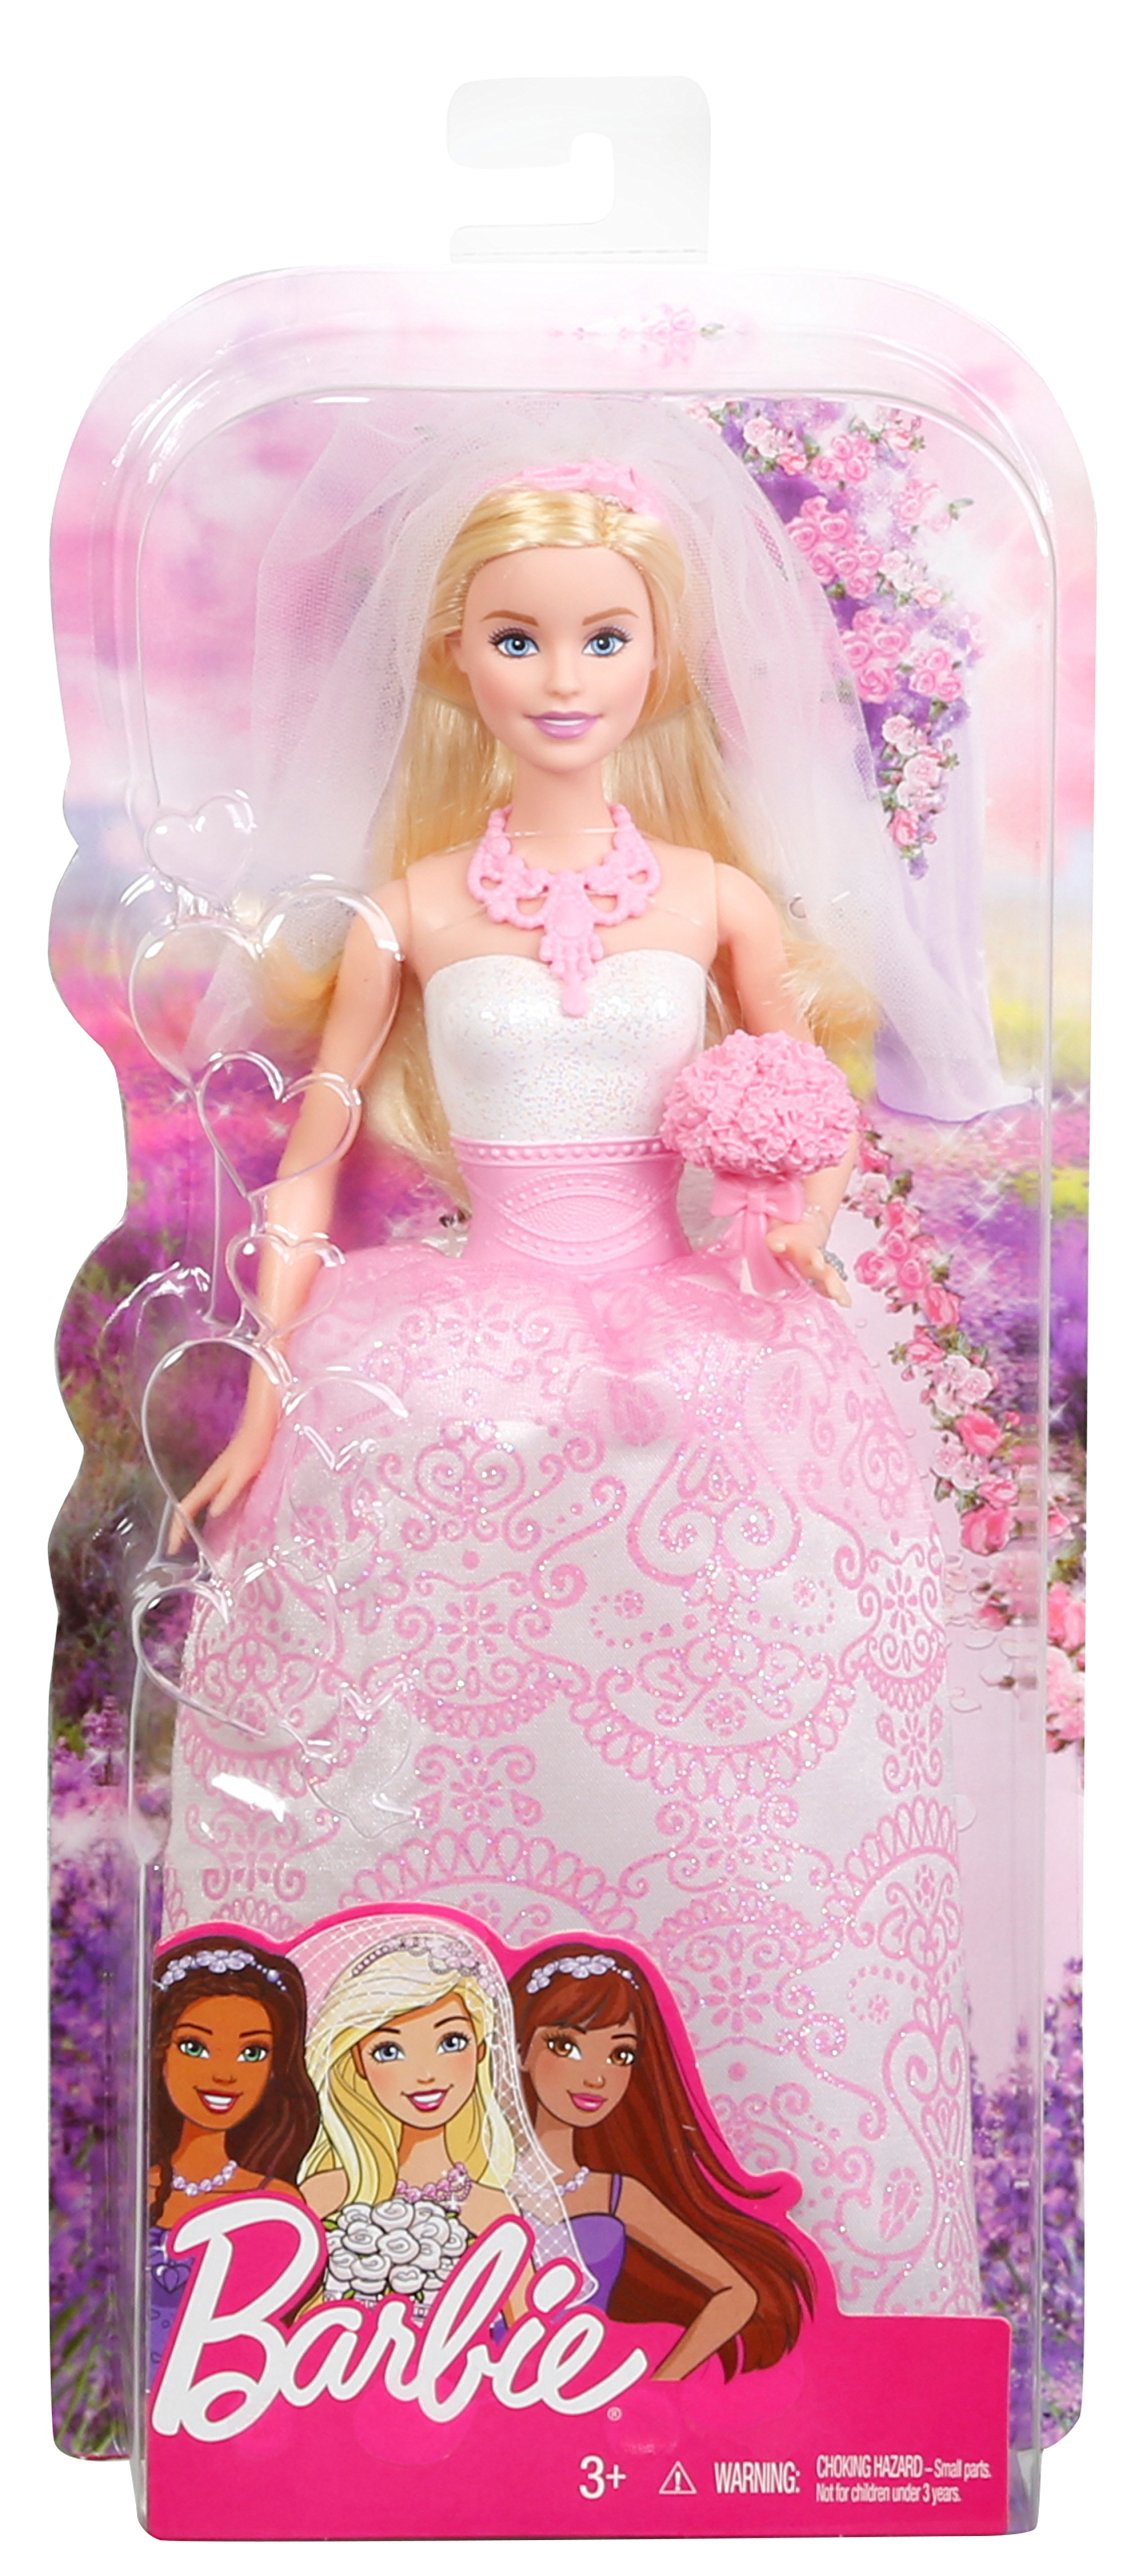 Barbie Fairytale Bride Doll Pink New